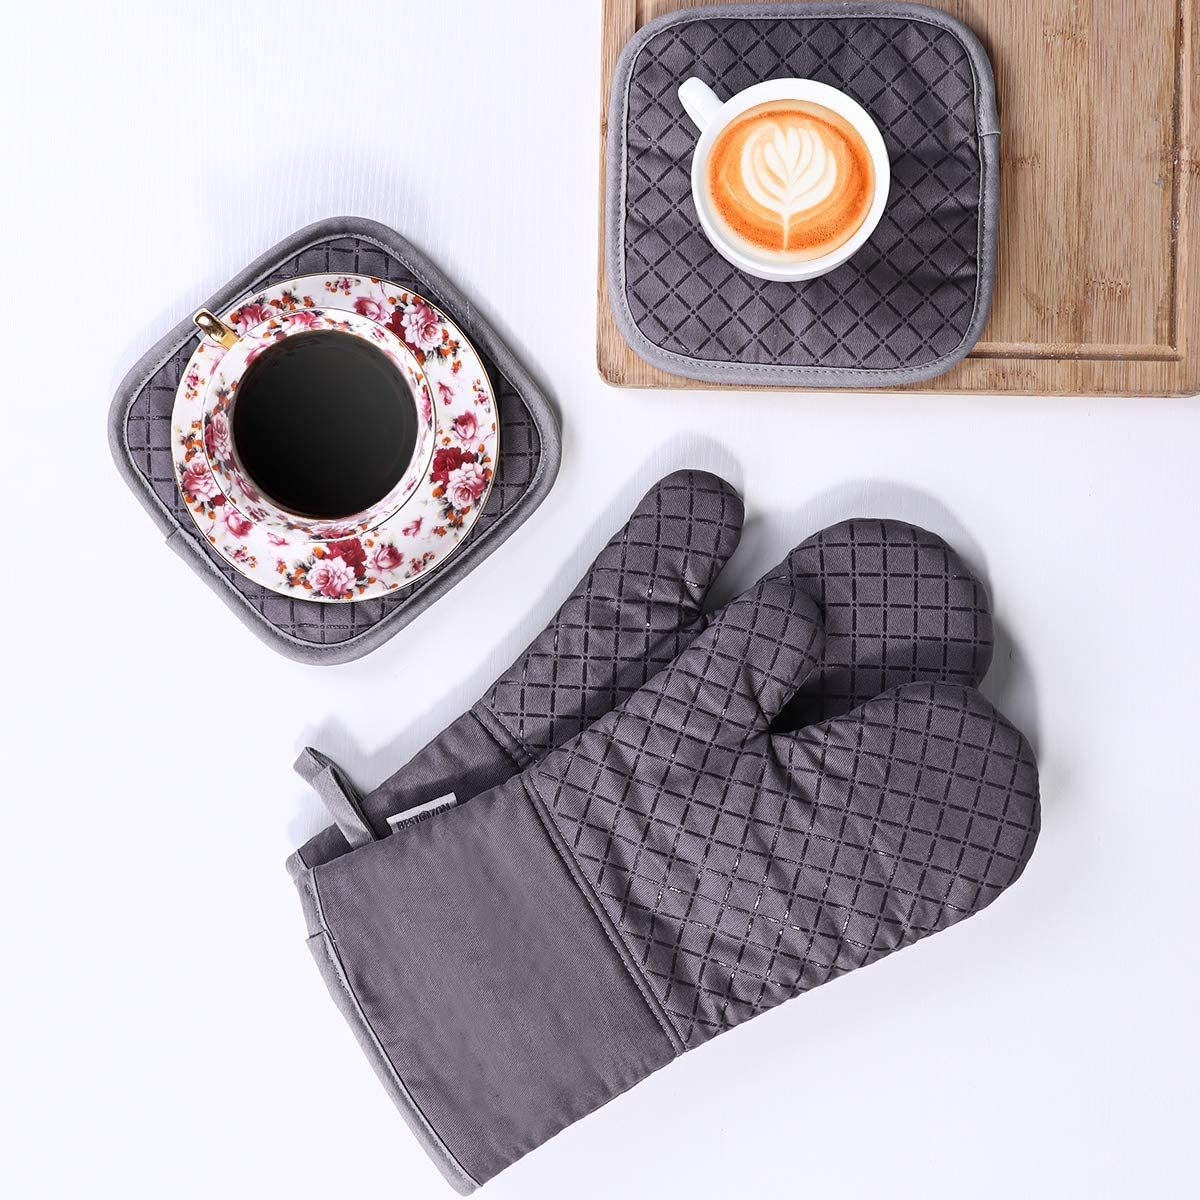 Heat Resistant Oven Mitts and Pot Holders, Soft Cotton Lining with Non-Slip Surface for Safe Baking Grilling, 4PCS (Grey)